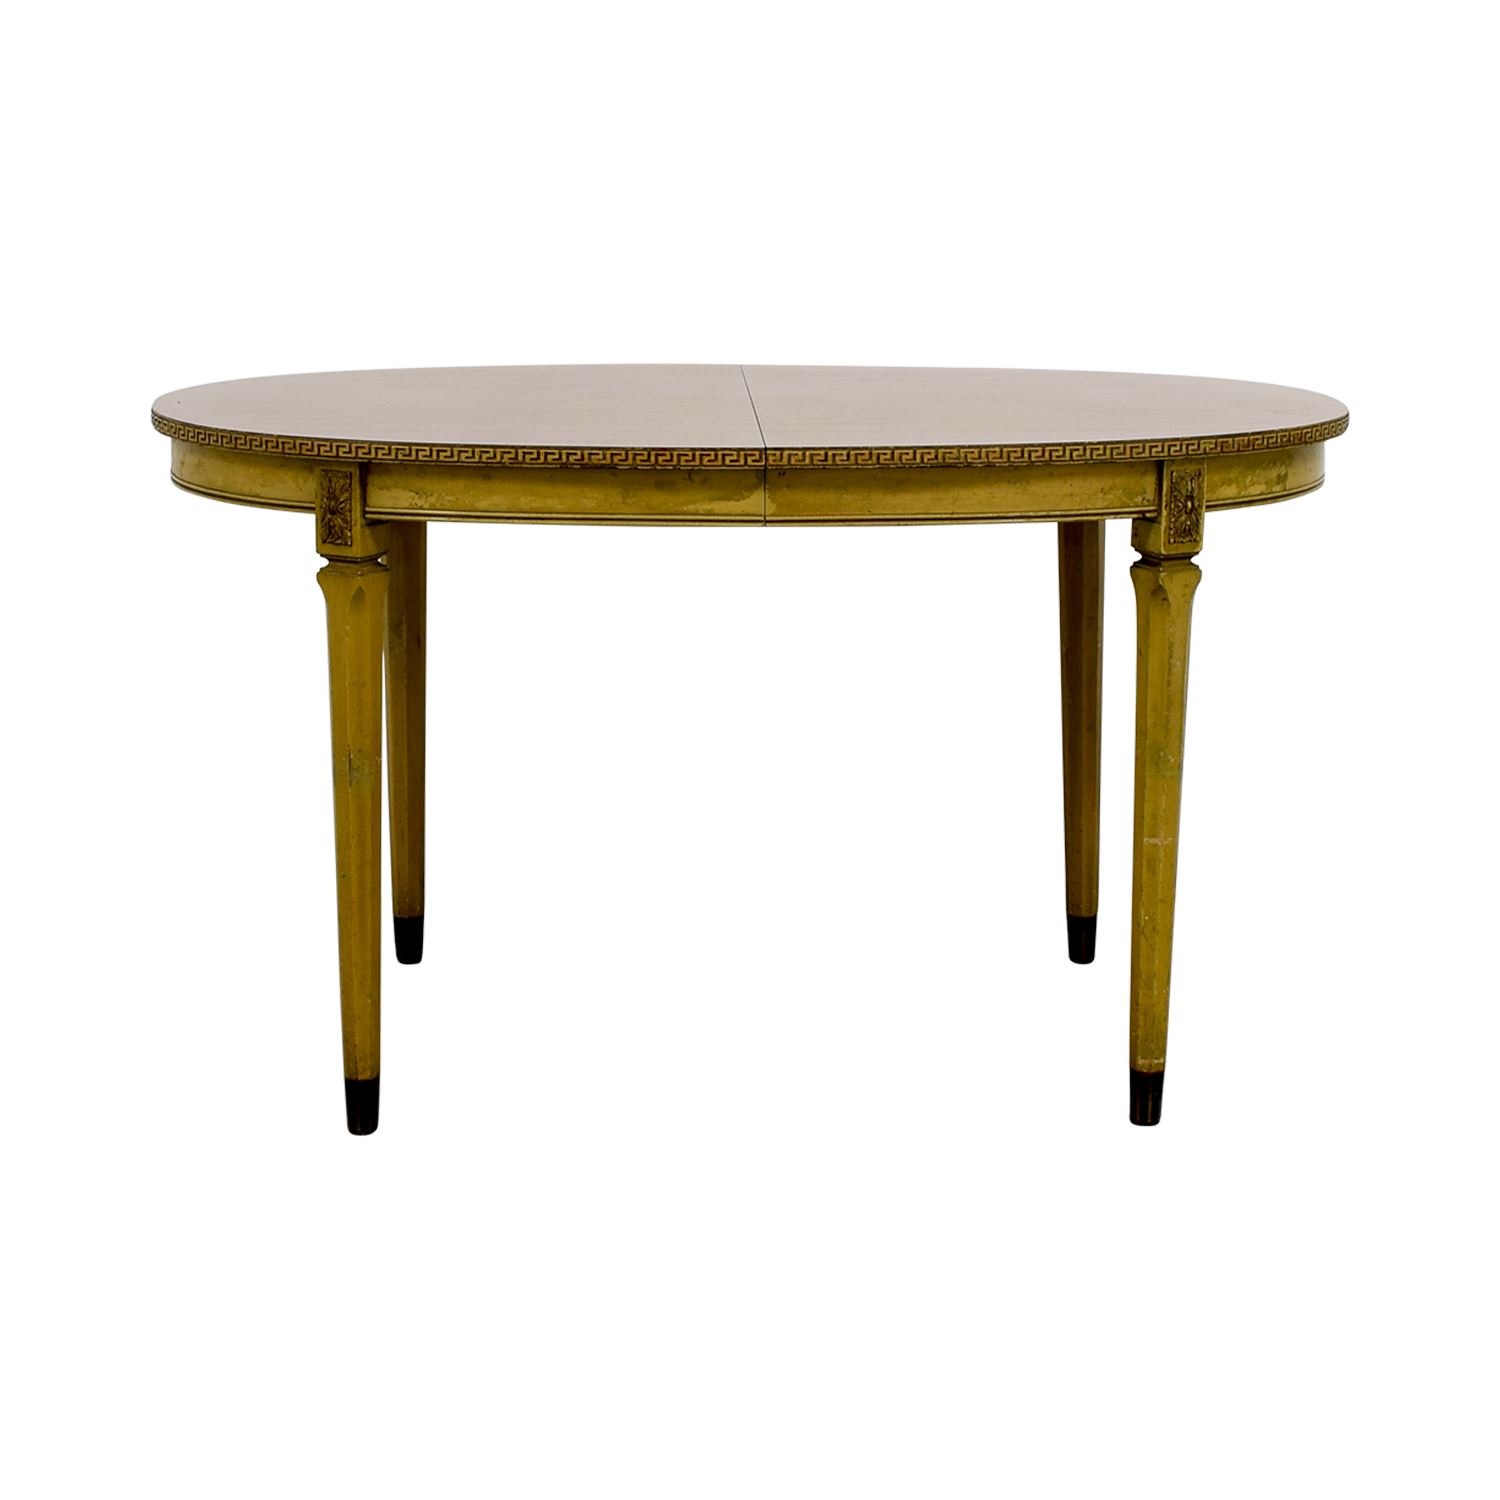 Vintage Greek Key Dining Table with Two Leaves on sale